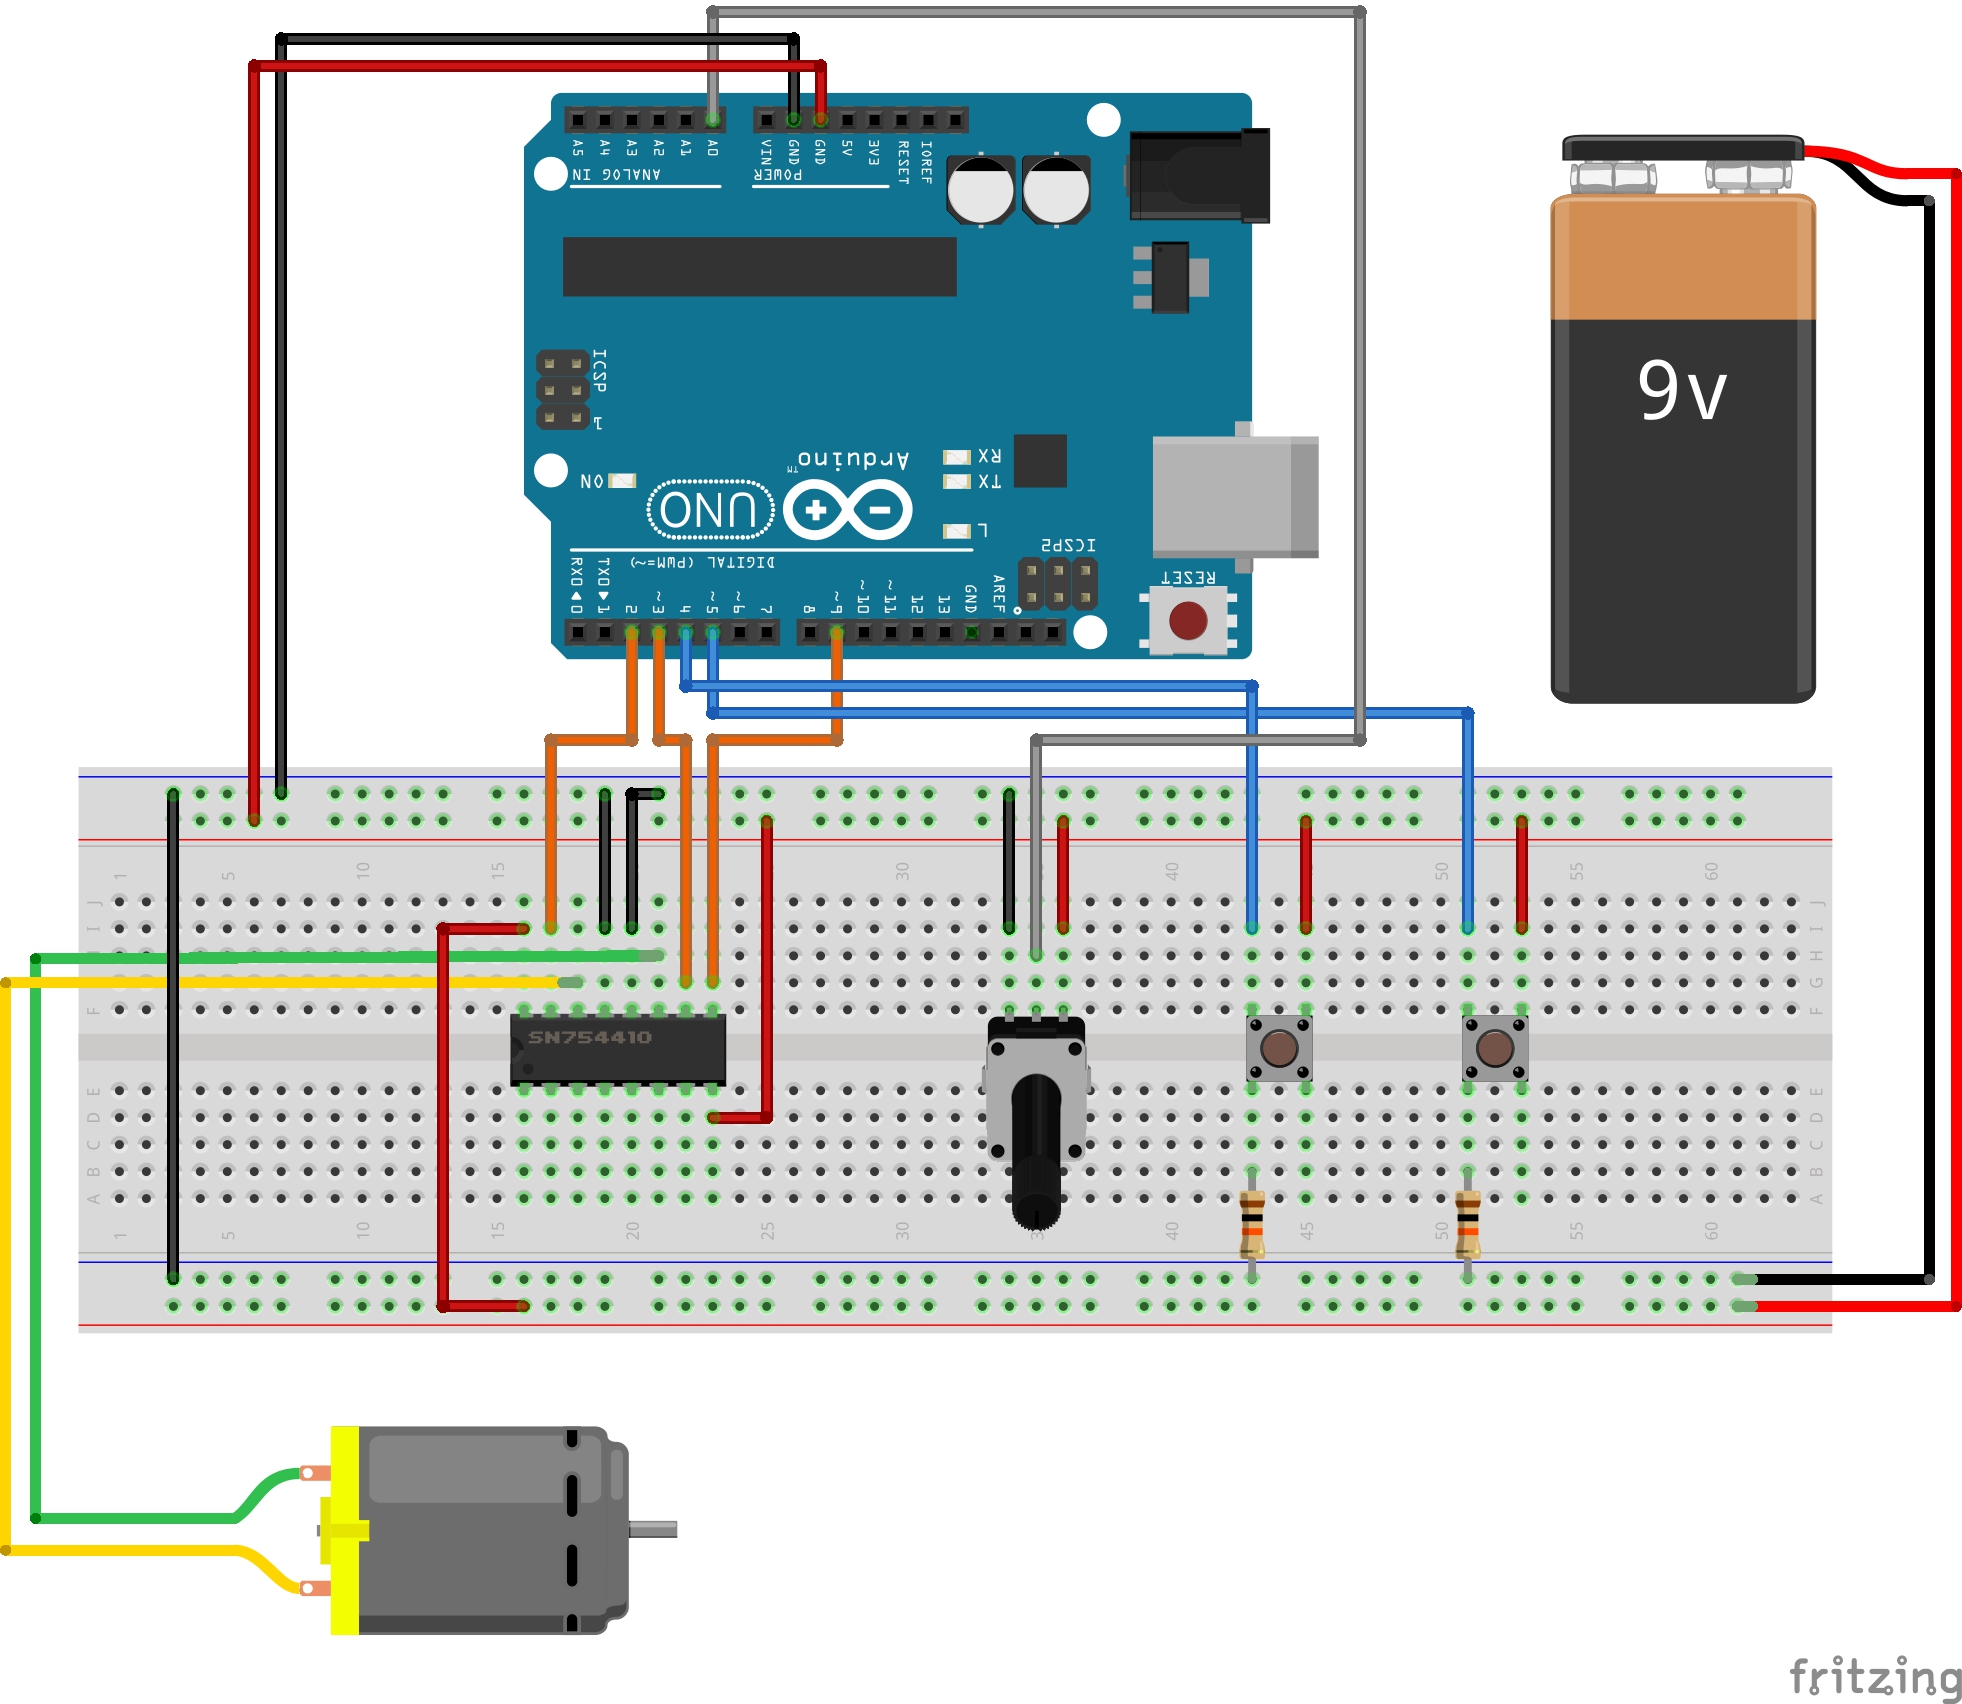 hight resolution of  i set the code that enables them to high 1a low 2a and low 1a high 2a according to the data sheet 3 potentiometer enables the motor is spinning in